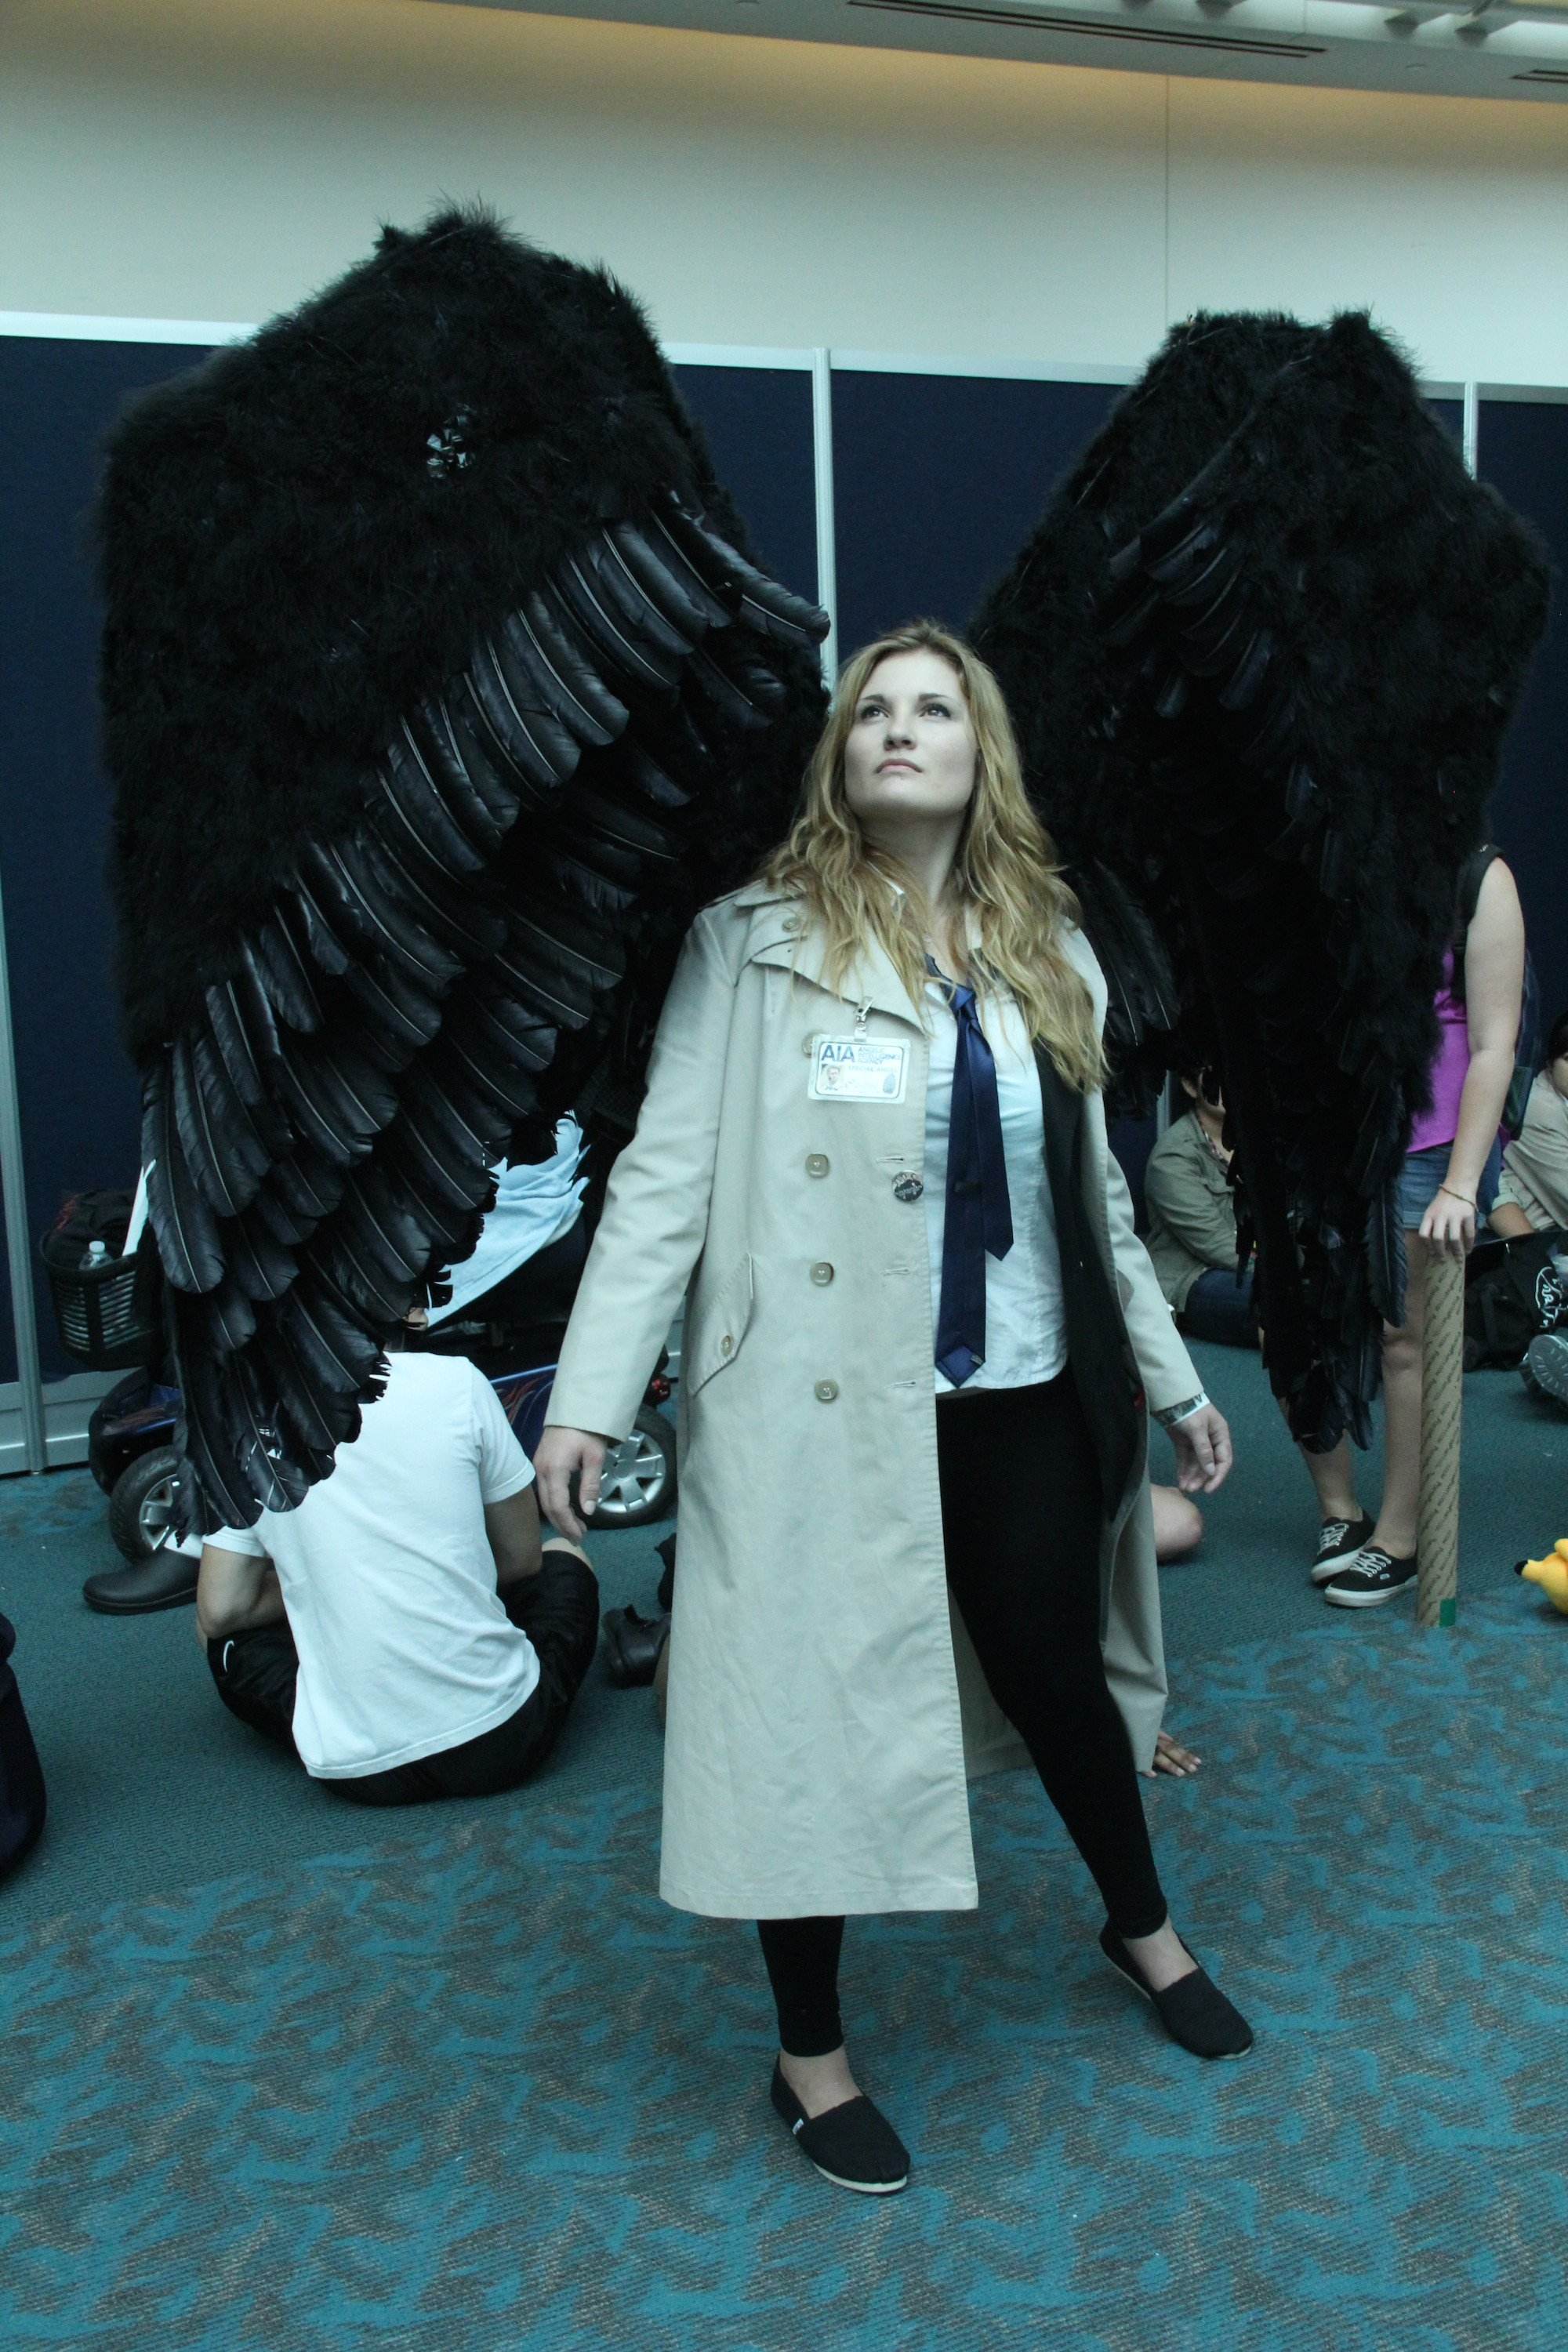 Comic-Con 2014: Cosplay - Castiel, Angel of the Lord